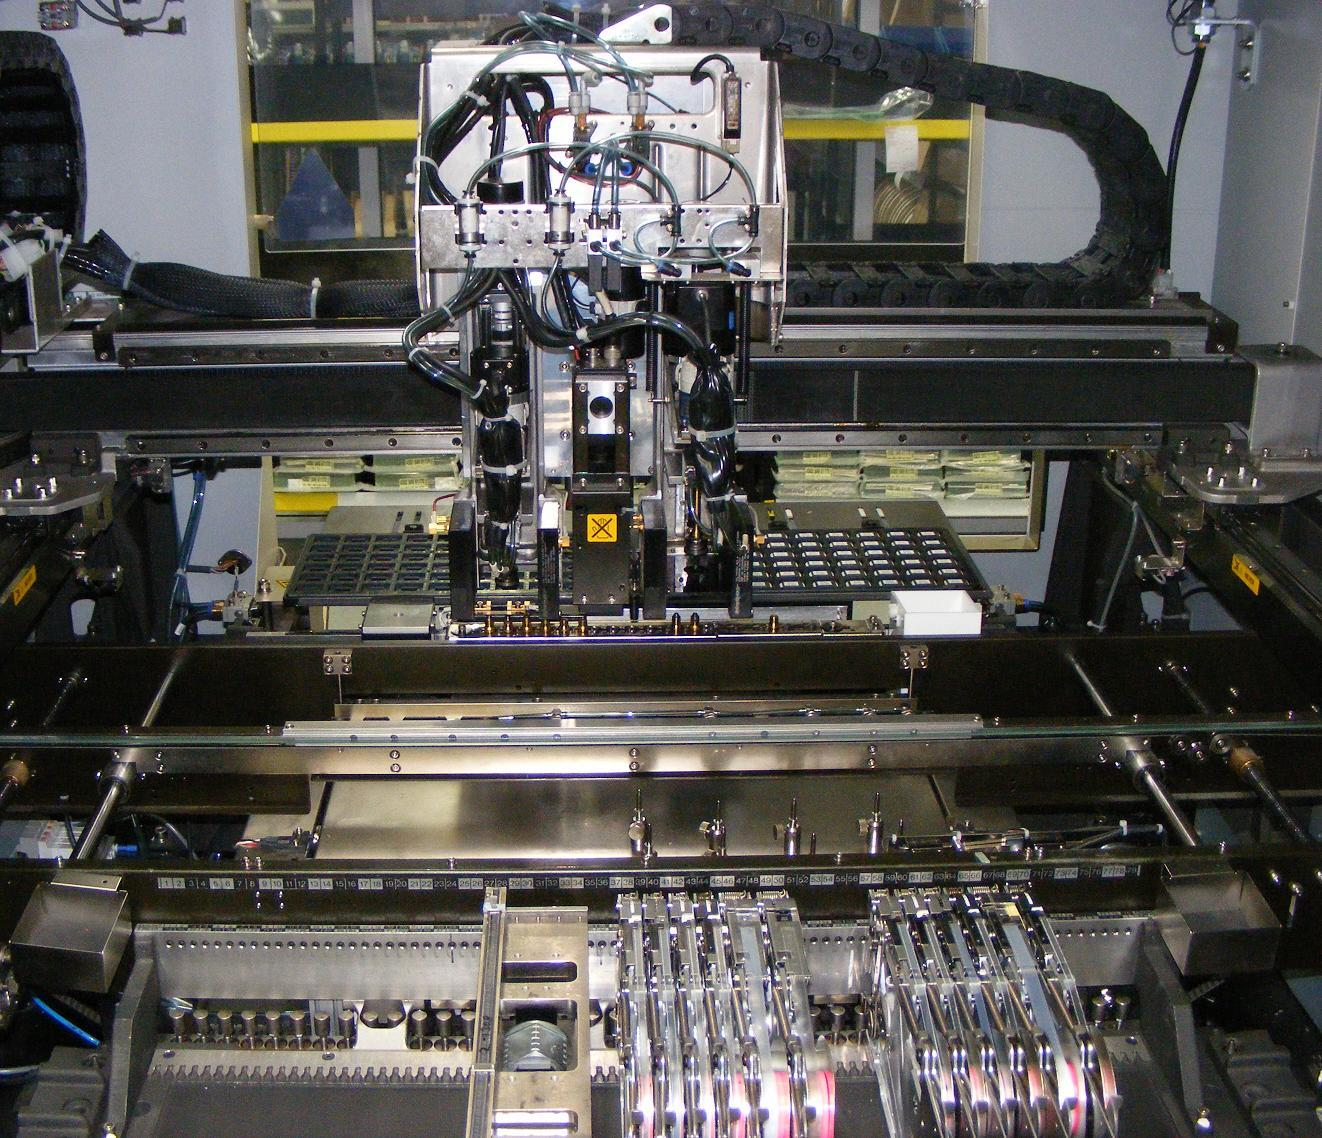 Smt Placement Equipment Wikipedia Printed Circuit Board Repairs Any General Industrial